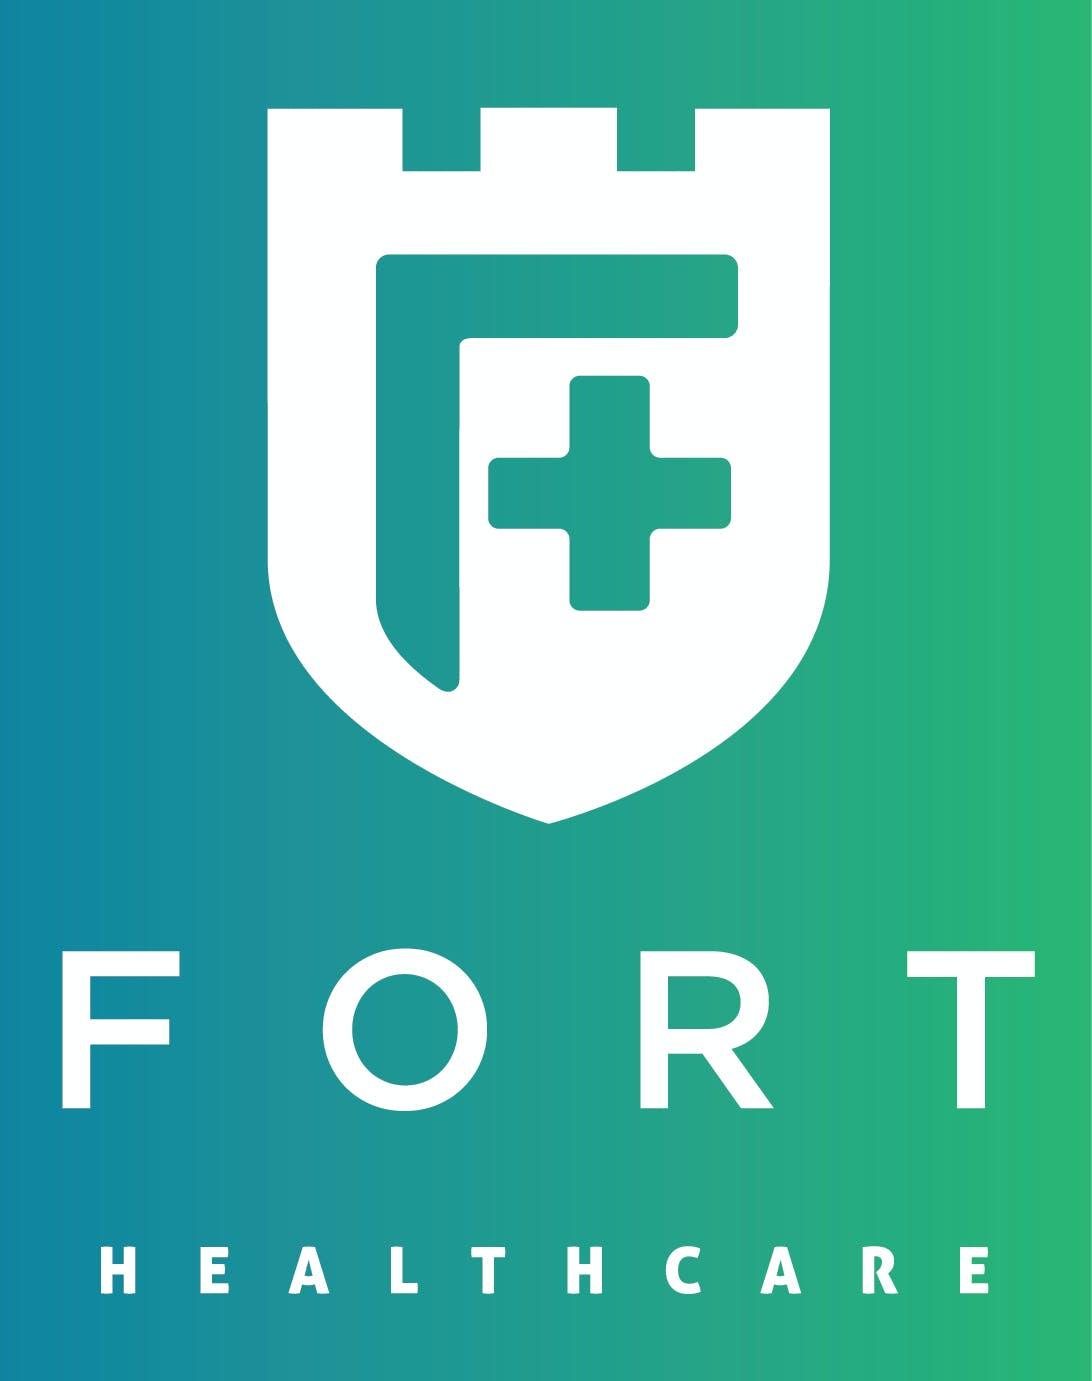 Fort Healthcare Chatswood Logo